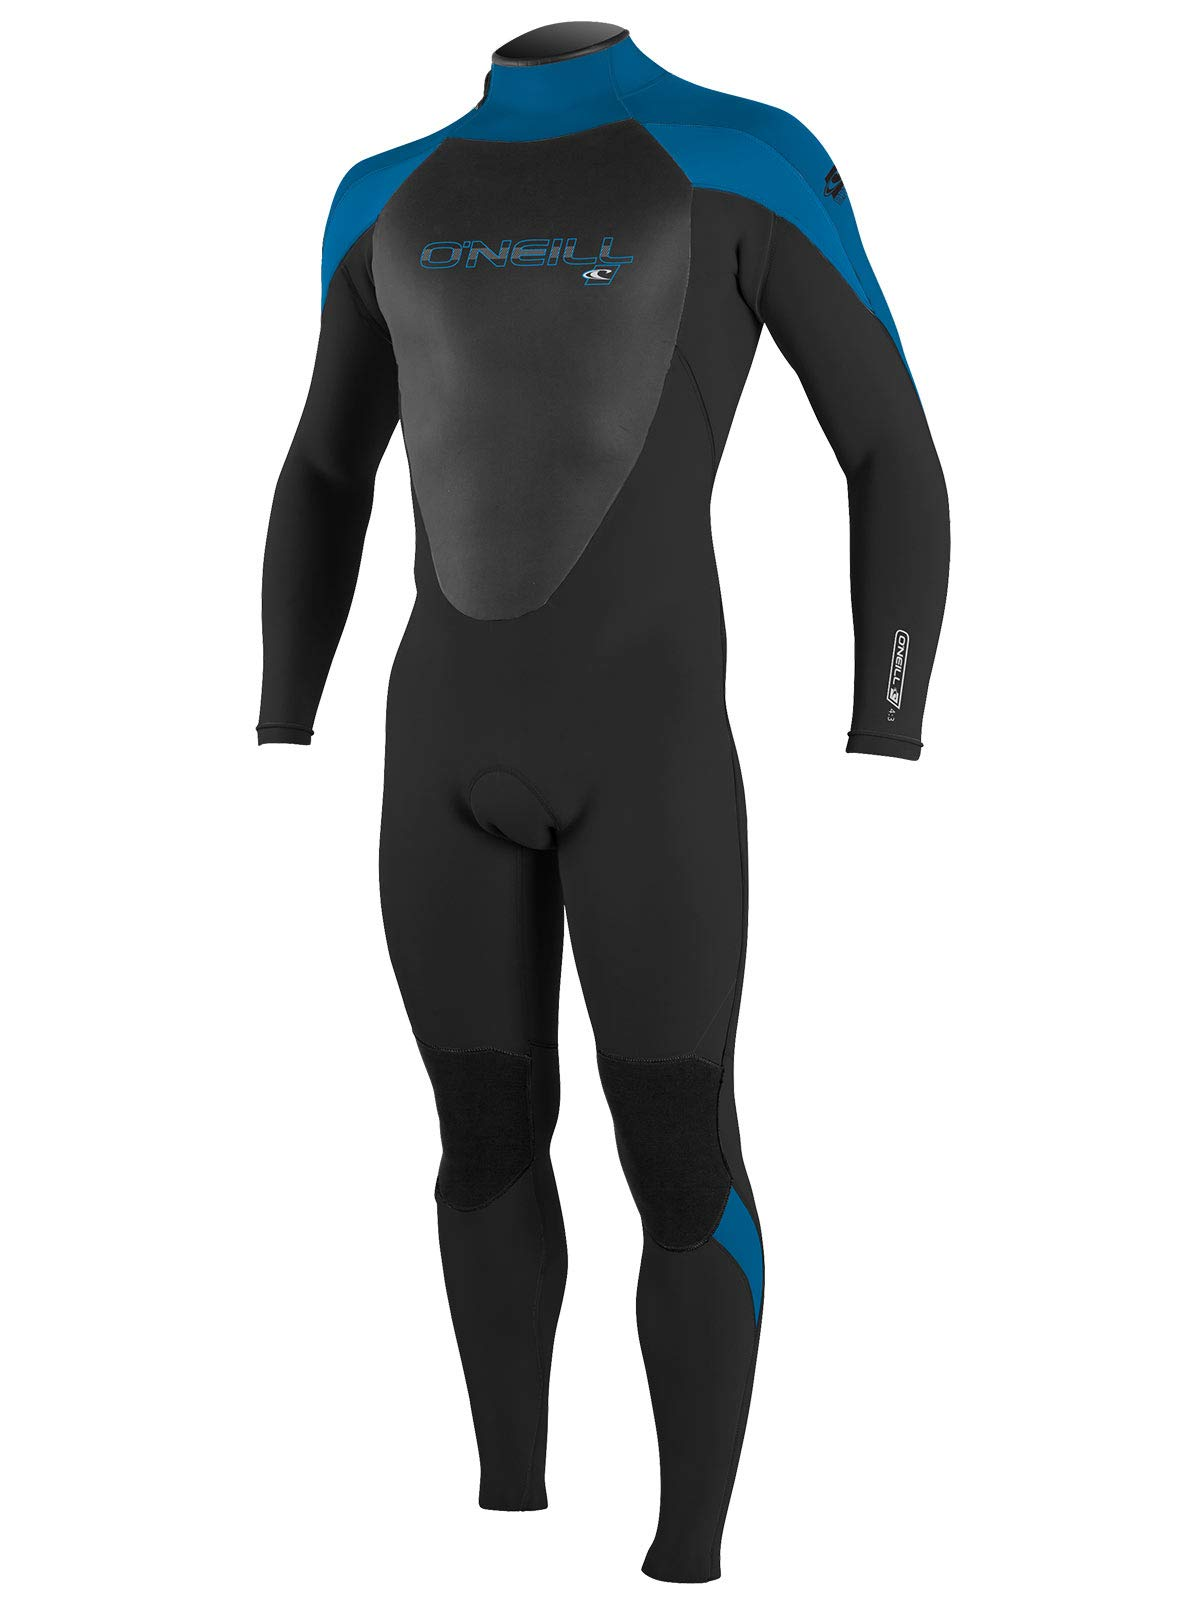 O'Neill Men's Epic 4/3mm Full Wetsuit 3XLS Black/Ocean/Brite Blue (4212) by O'Neill Wetsuits